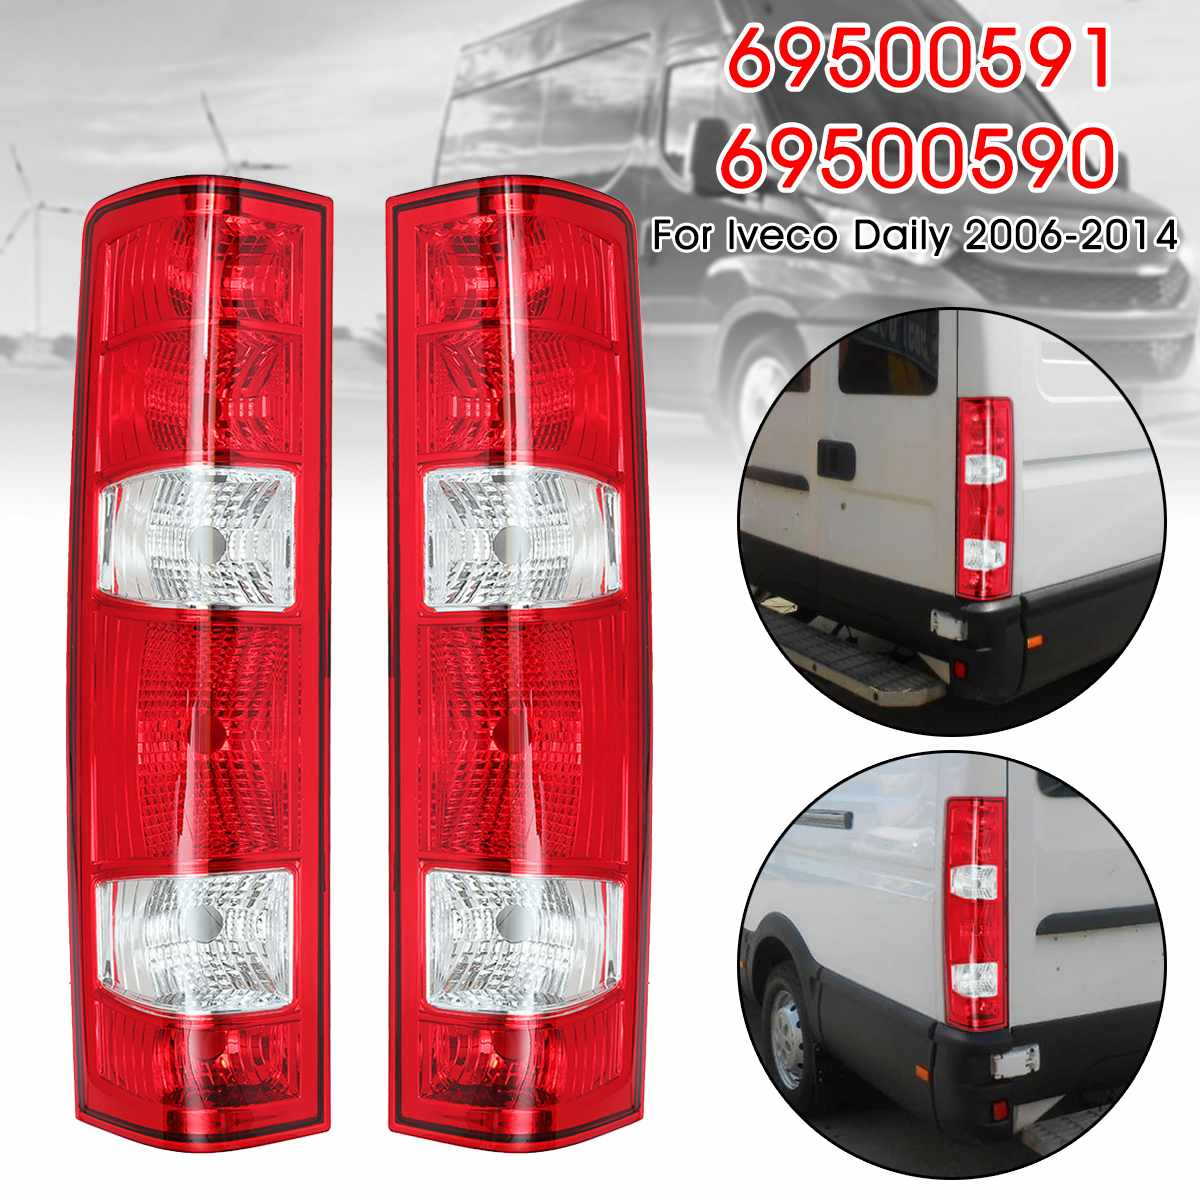 Rear Right Left Tail Brake Light Brake Signal Lamp For Iveco Daily 2006 2014 69500590 69500591